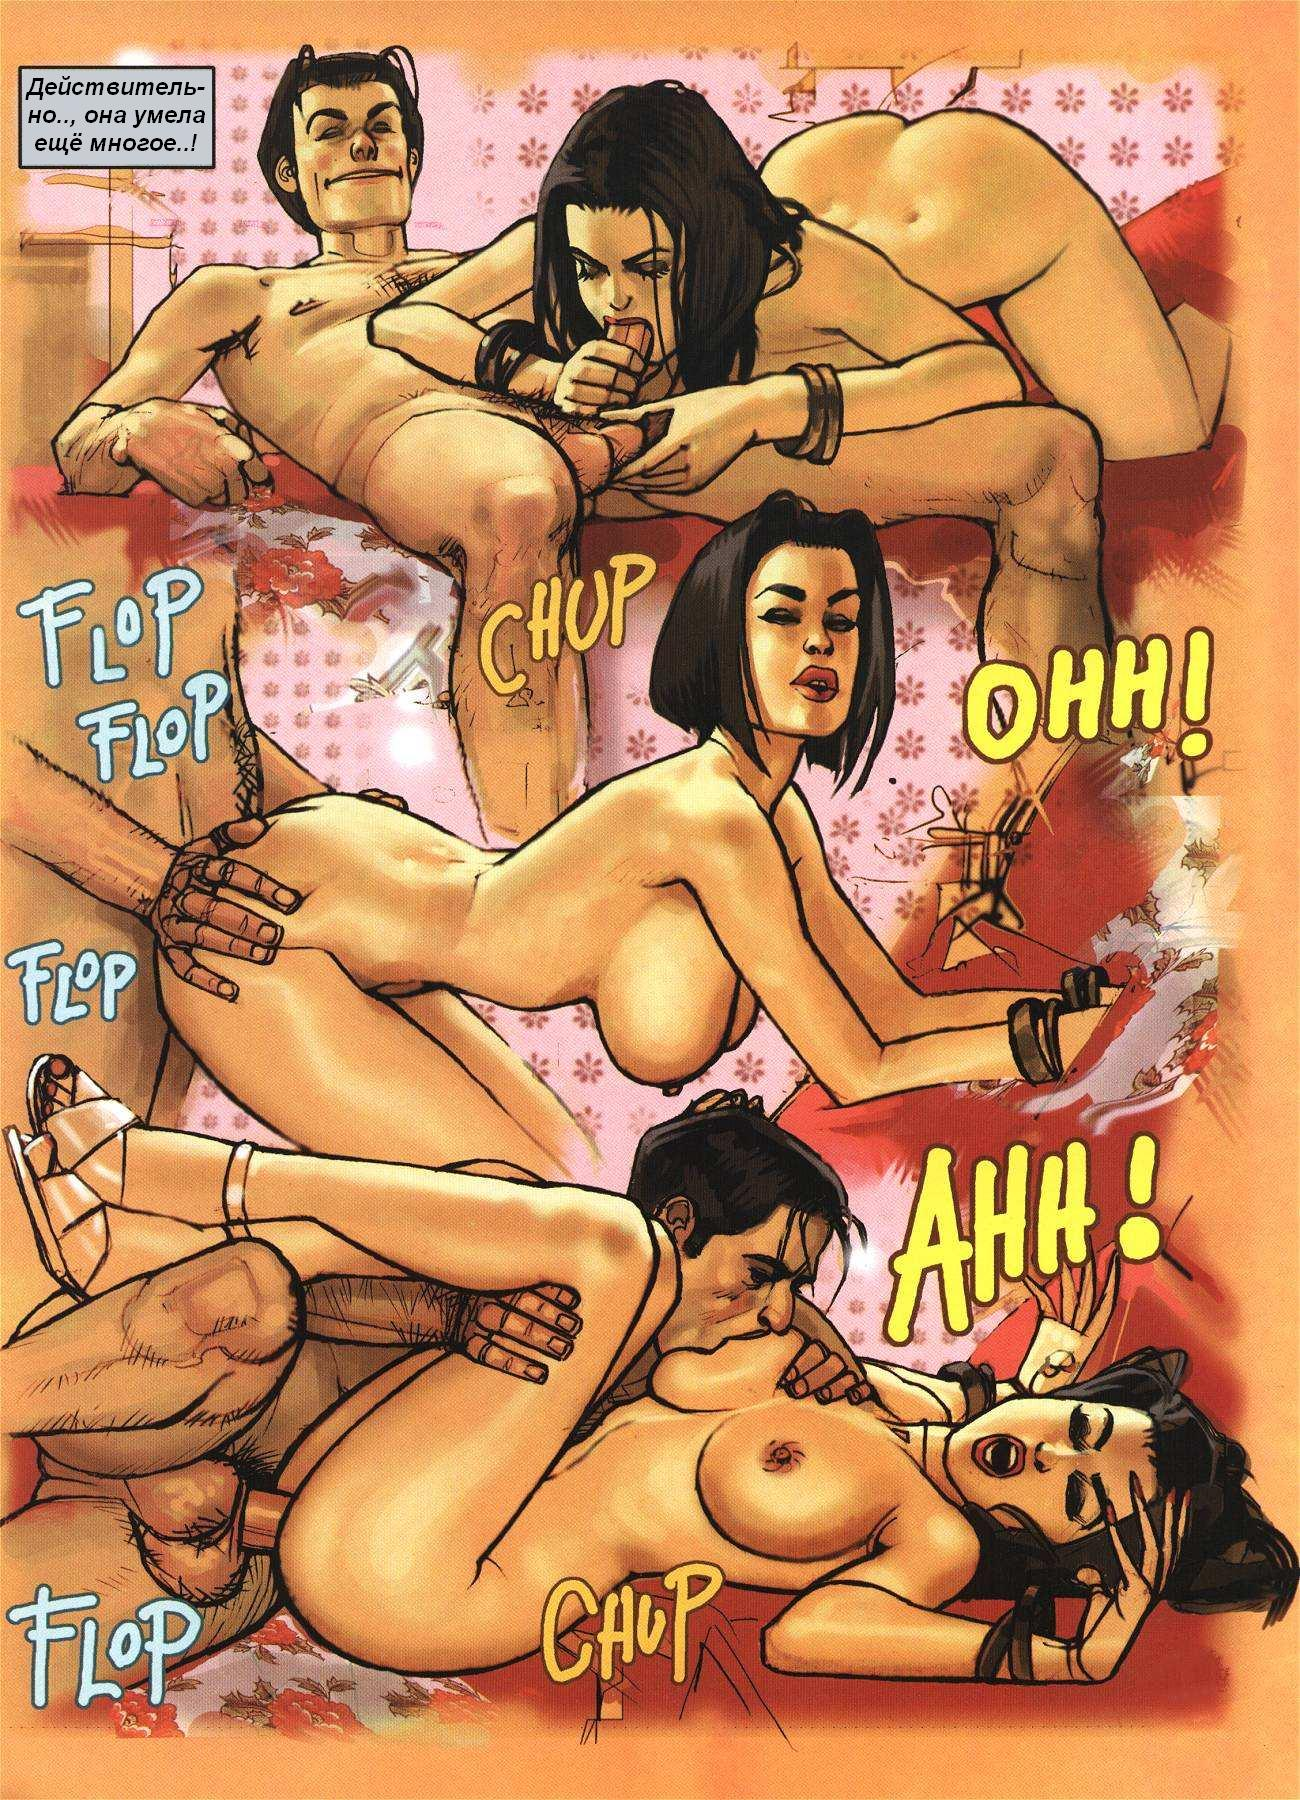 Vimper cartoon sex gallary porn pictures